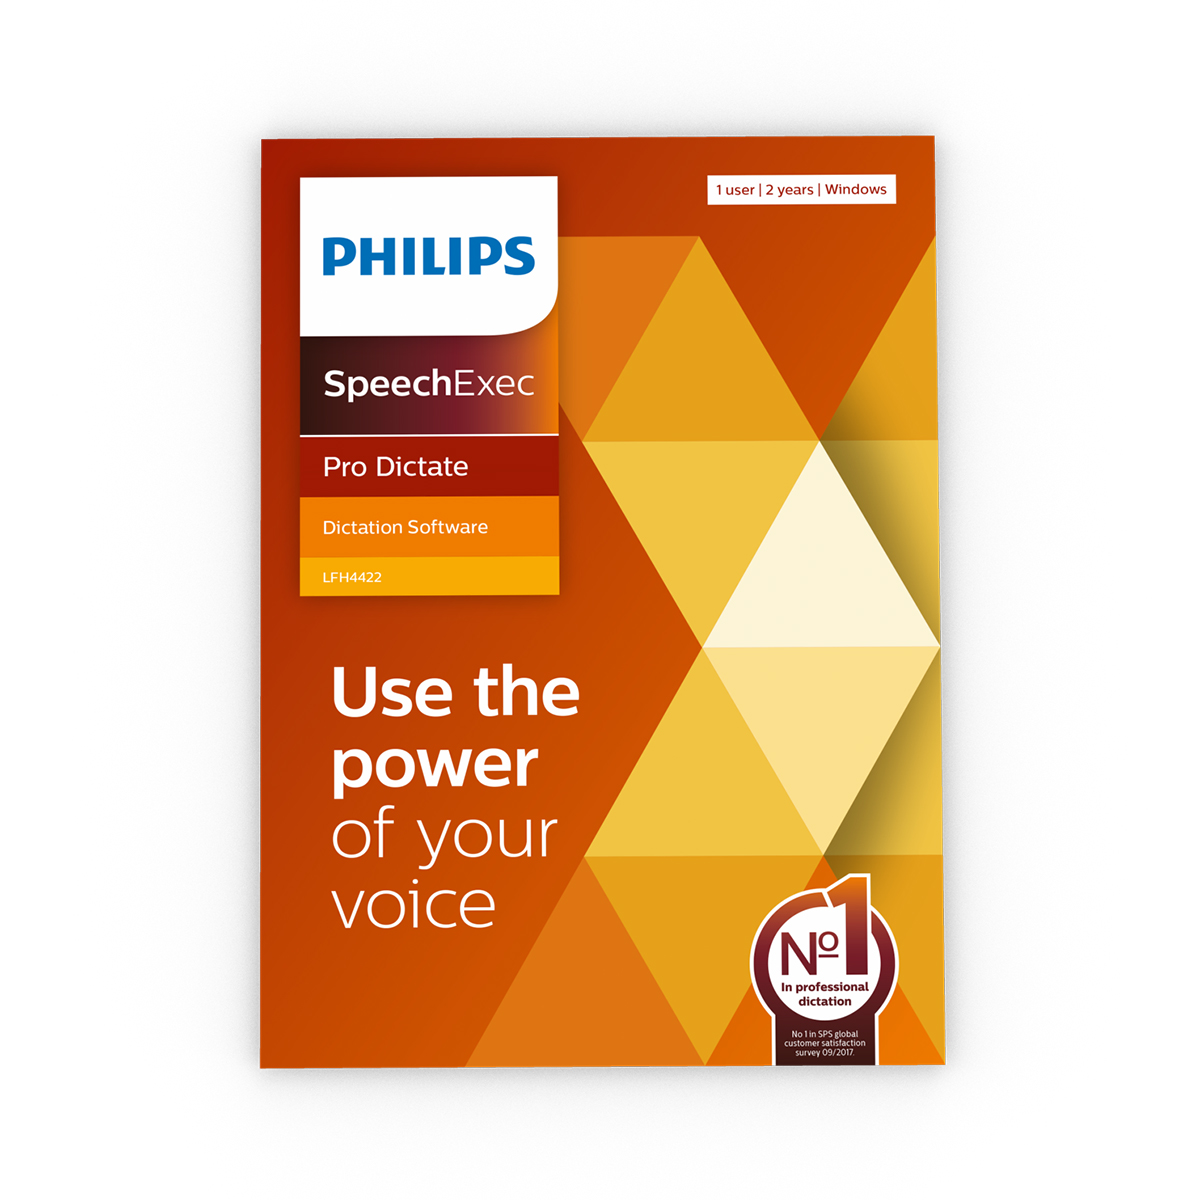 Philips LFH4422 SpeechExec 11 Pro Dictate 2 Year Subscription Boxed